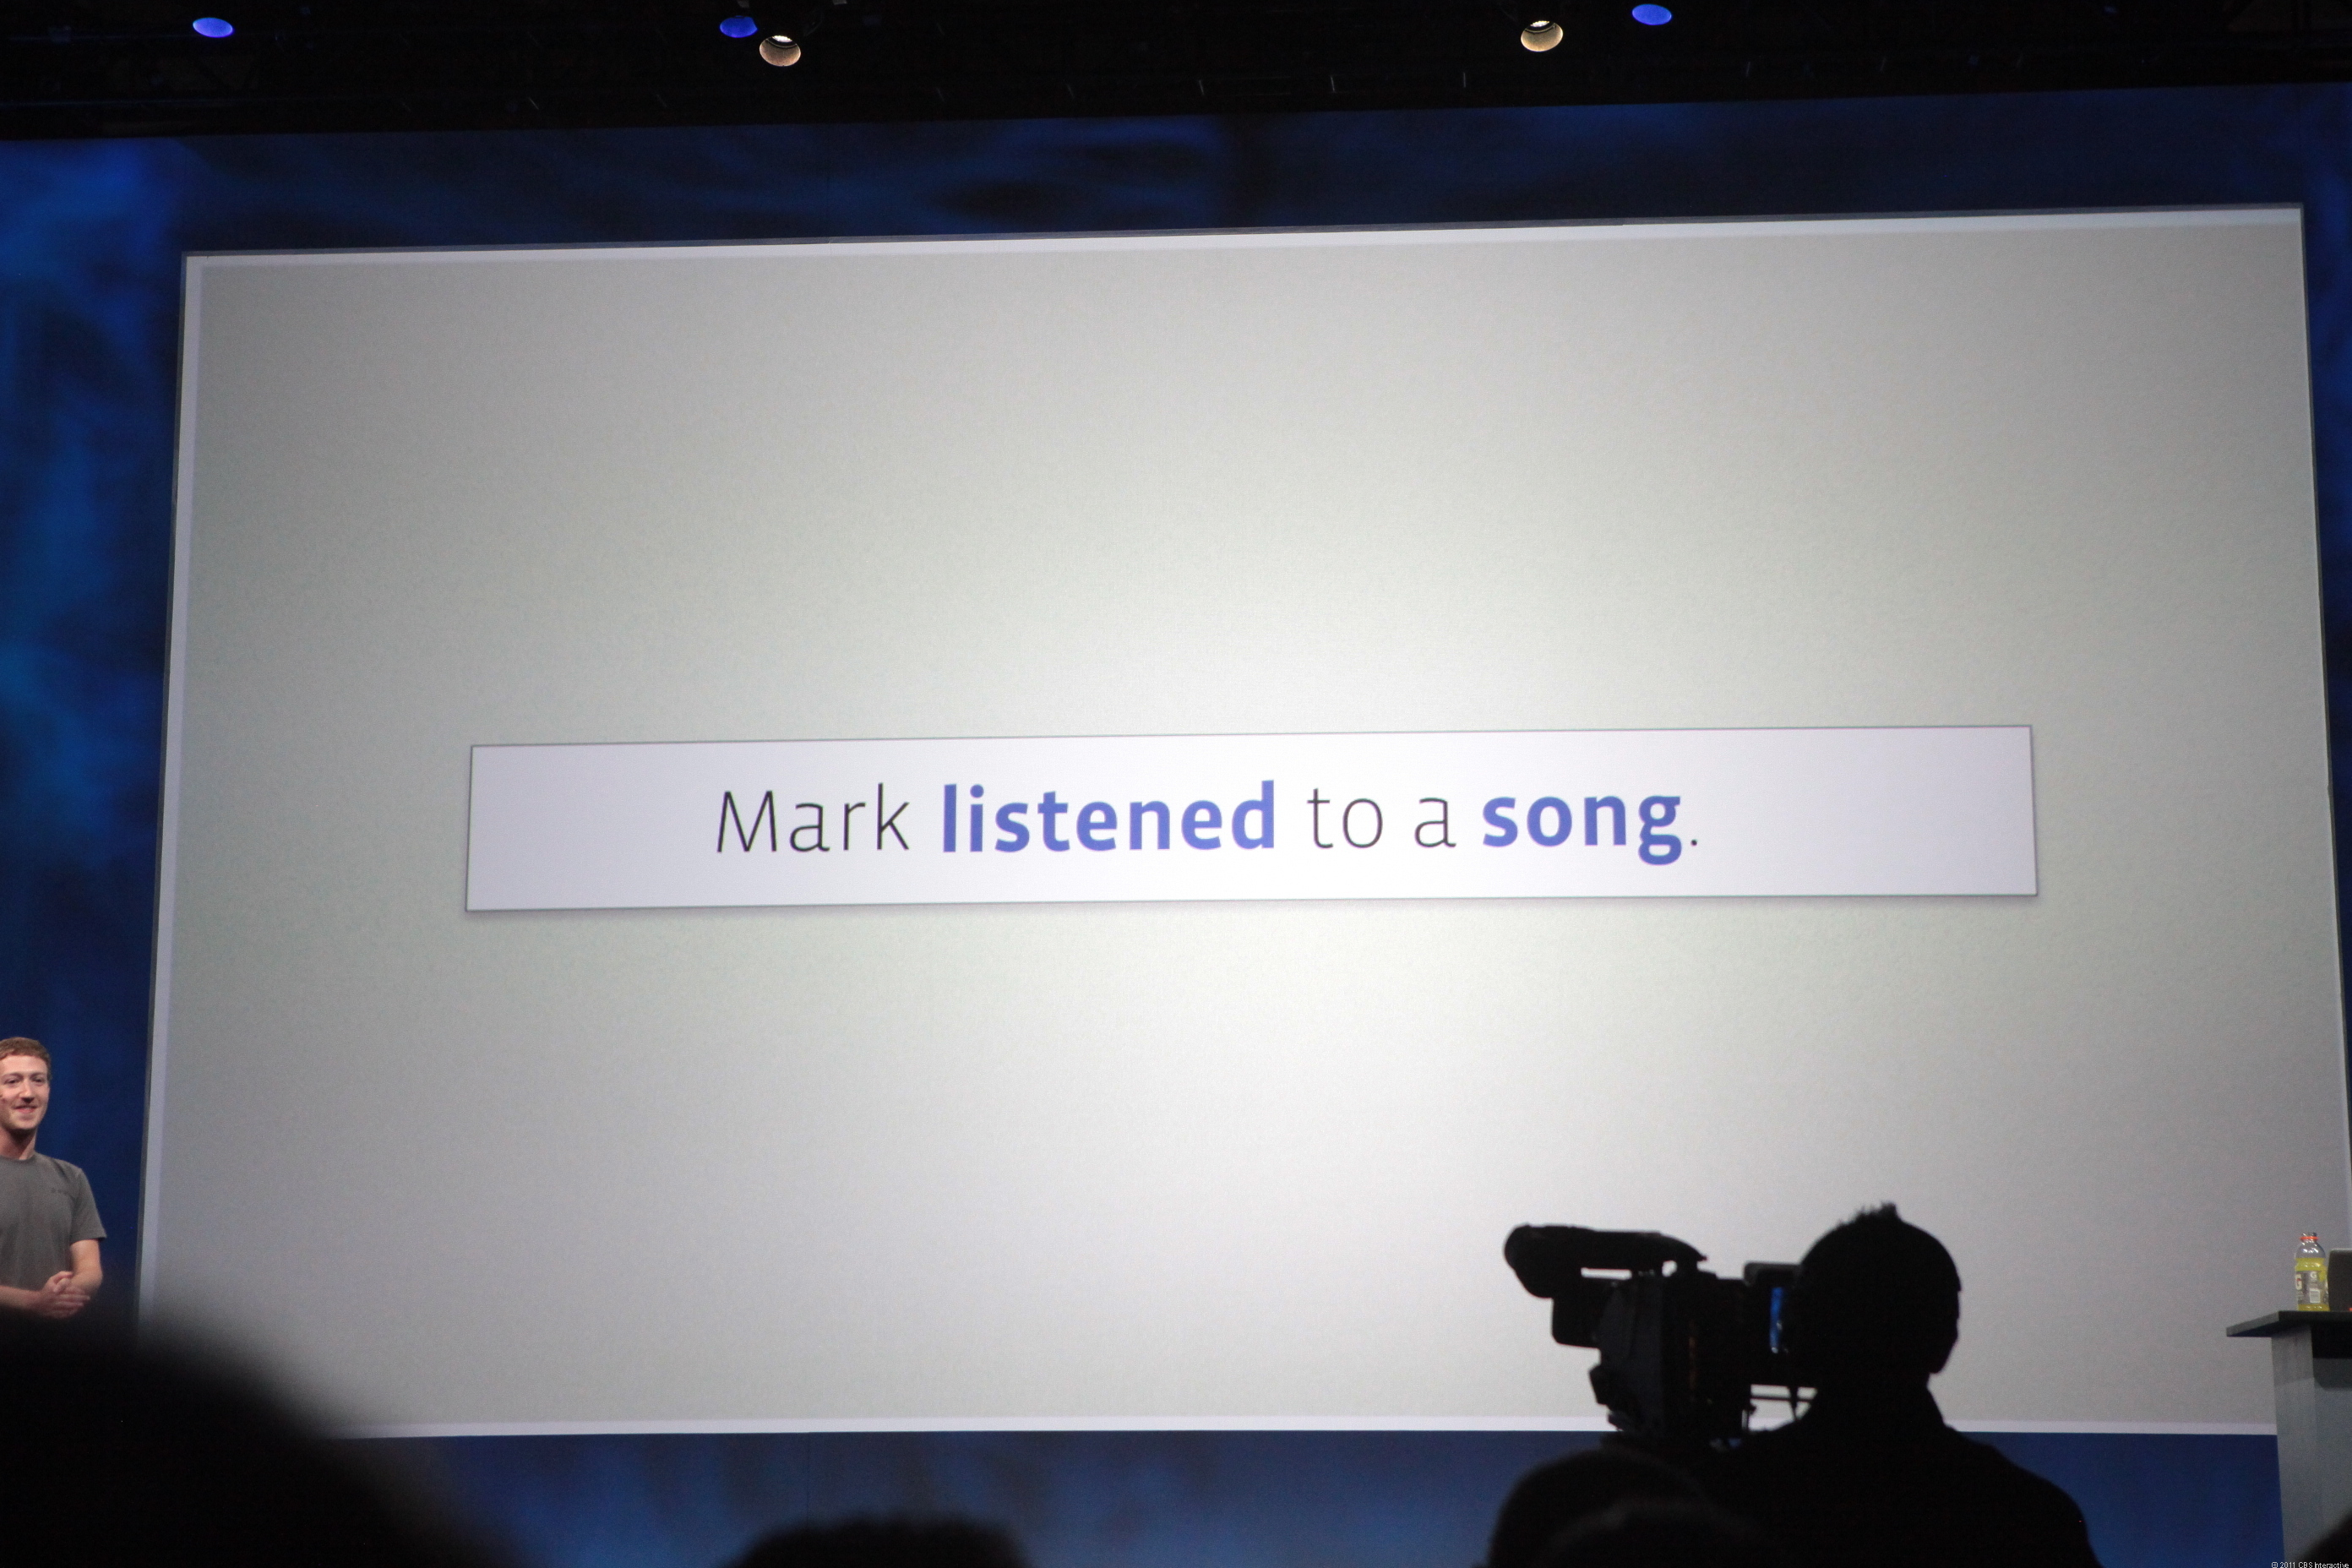 Facebook updates will now include verbs when people listen to songs, cook a meal, or watch a show.